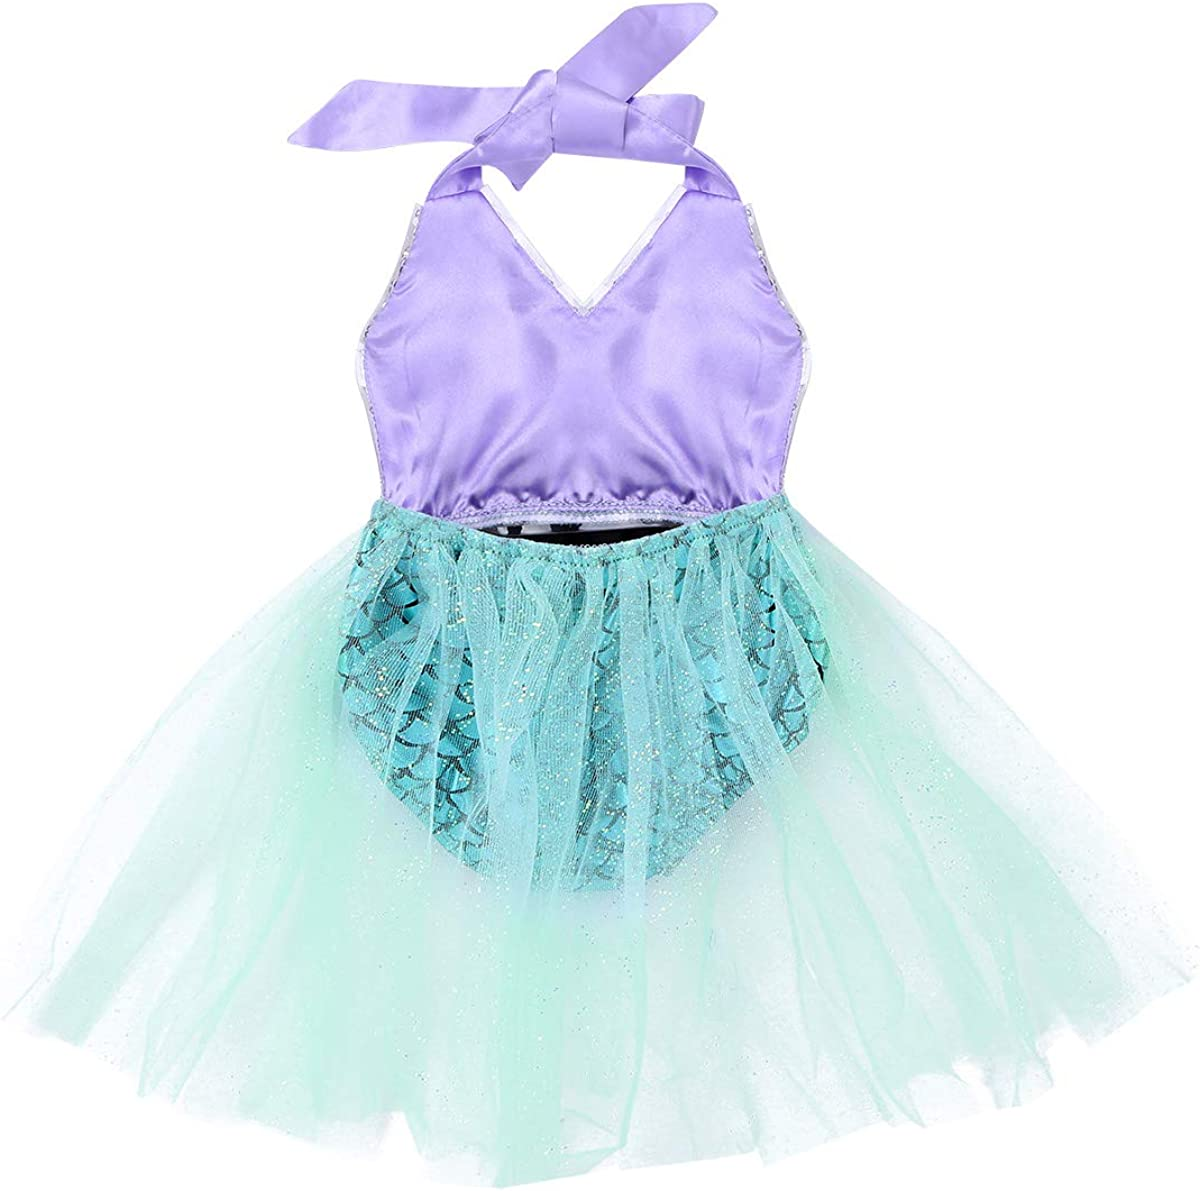 YiZYiF Mermaid Baby Girl Sequins Shiny Scale Stretchy Tutu Skirted Romper Jumpsuit for Dress up or Swimming